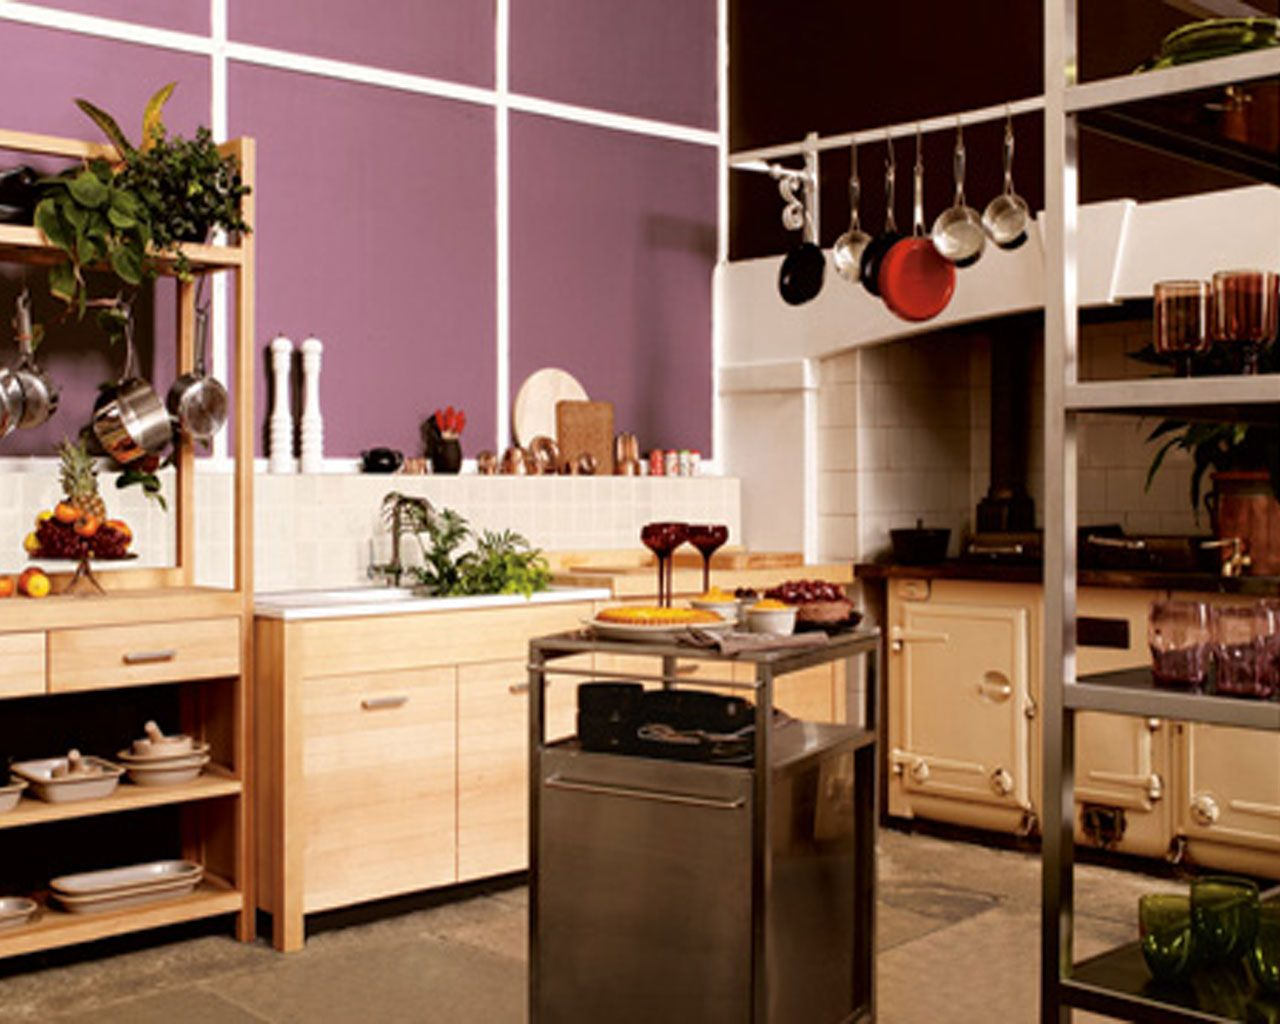 Best Kitchen Design Ideas 150 kitchen design remodeling ideas pictures of beautiful kitchens Best Images About Purple Rooms On Pinterest Purple Dining Kitchen Design Ideas 2013